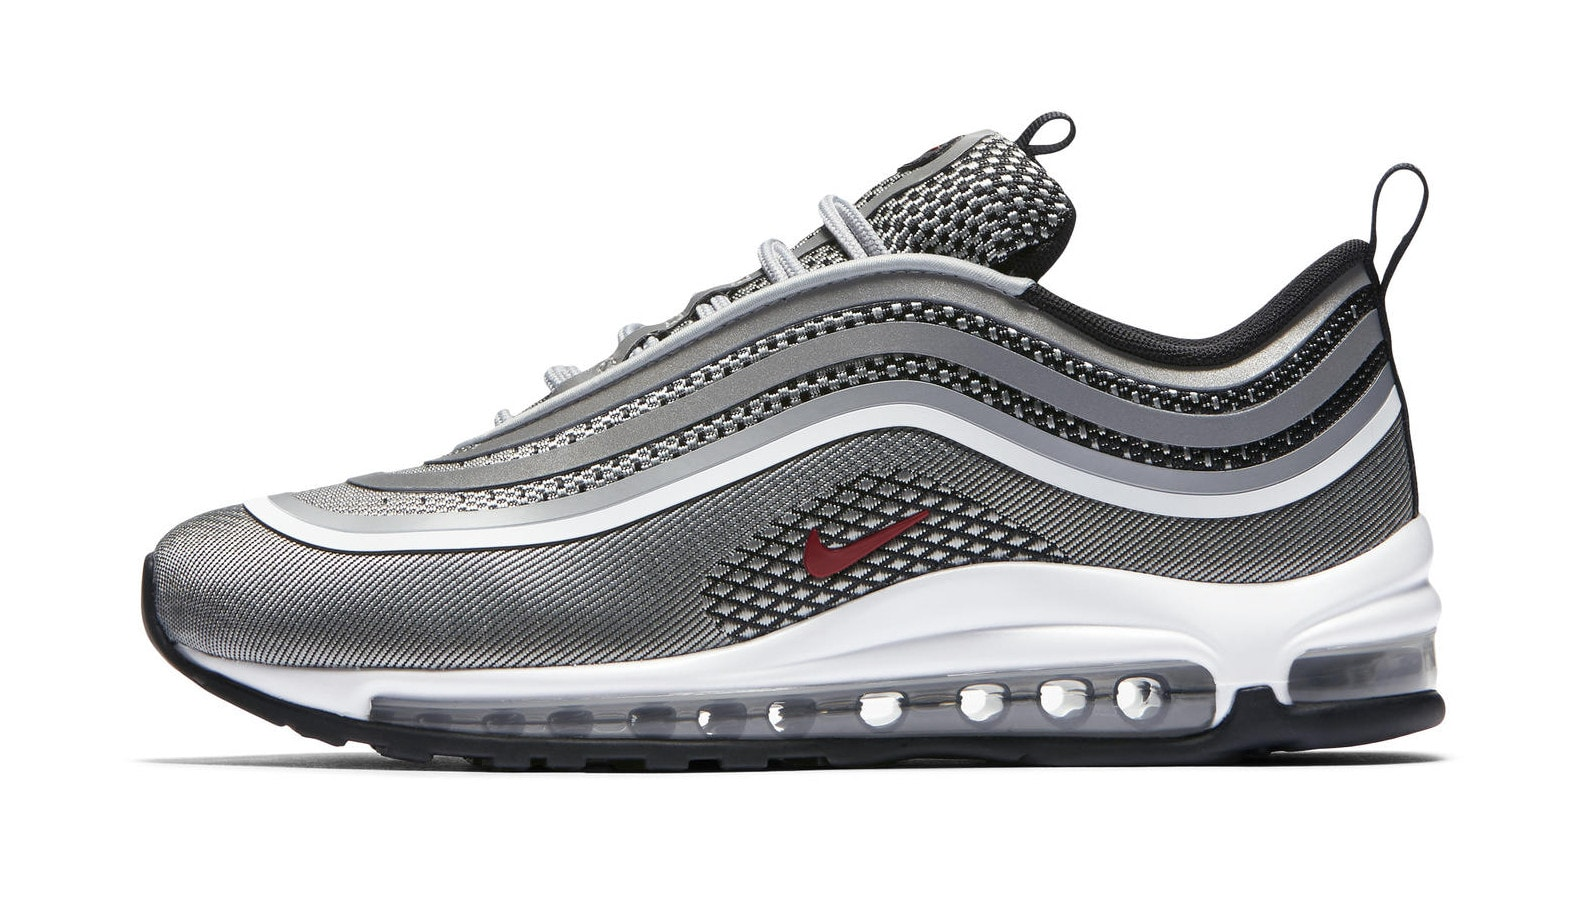 Cheap Nike Air Max 97 'Cobblestone' Release Date. Cheap Nike⁠+ Launch IE